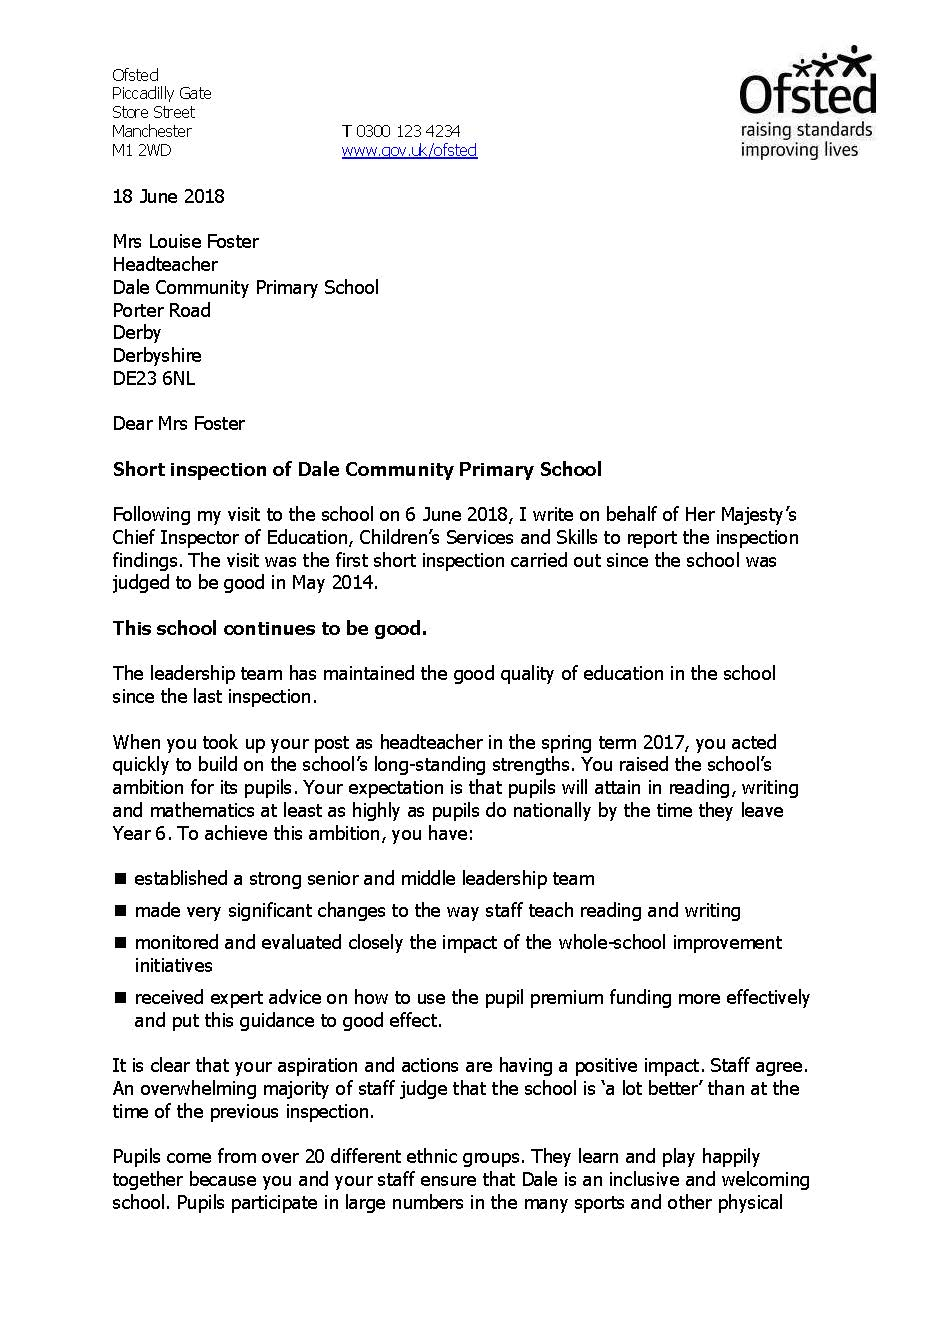 Dale Community Primary School 10048081 final pdf_Page_1.jpg